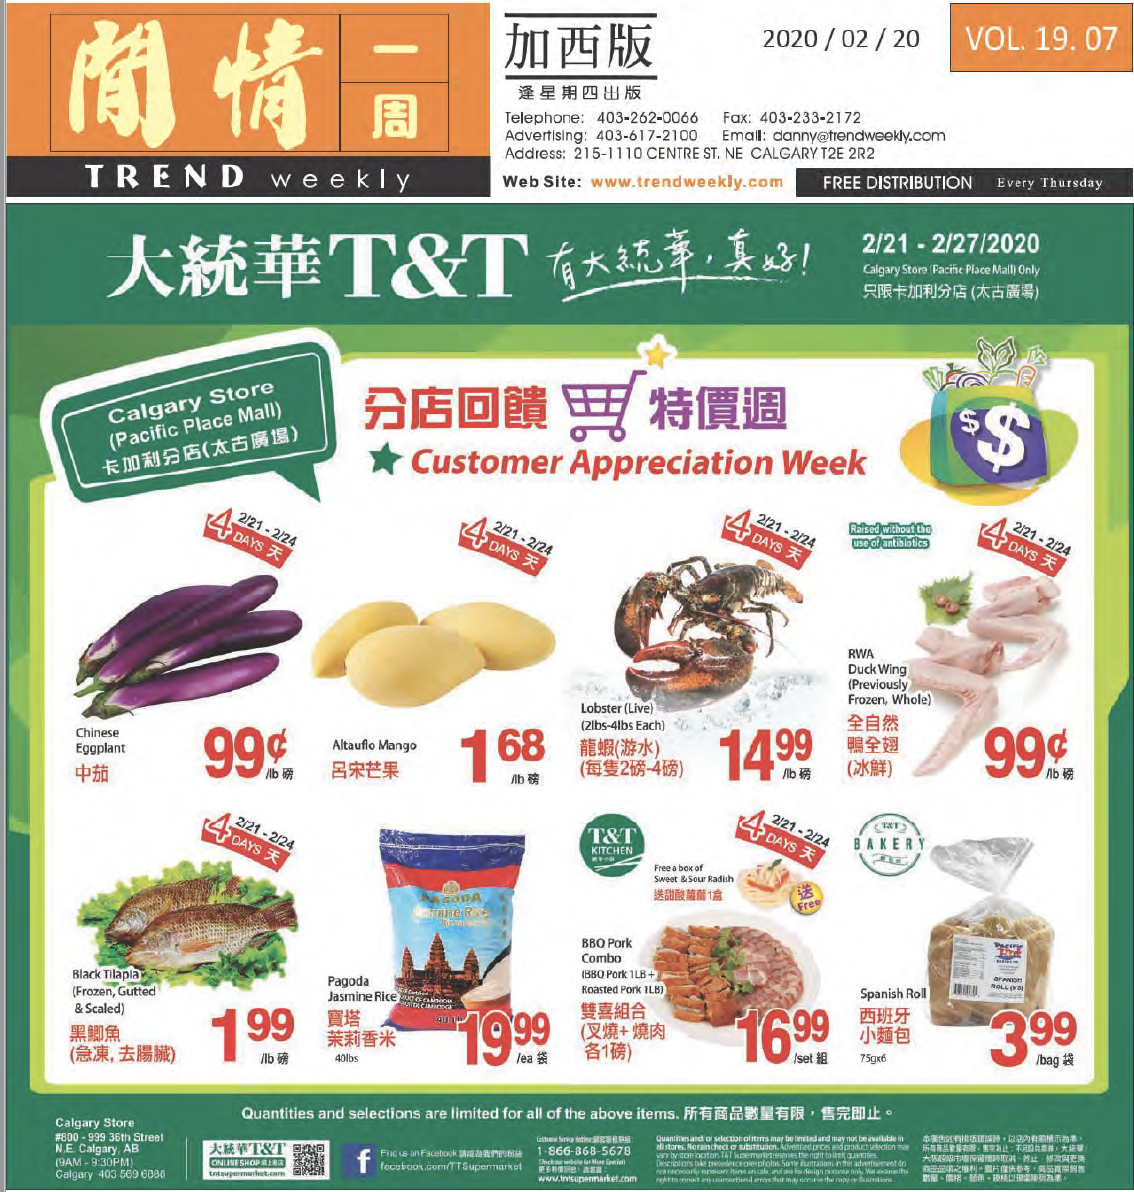 February 20 Trend Weekly Issue